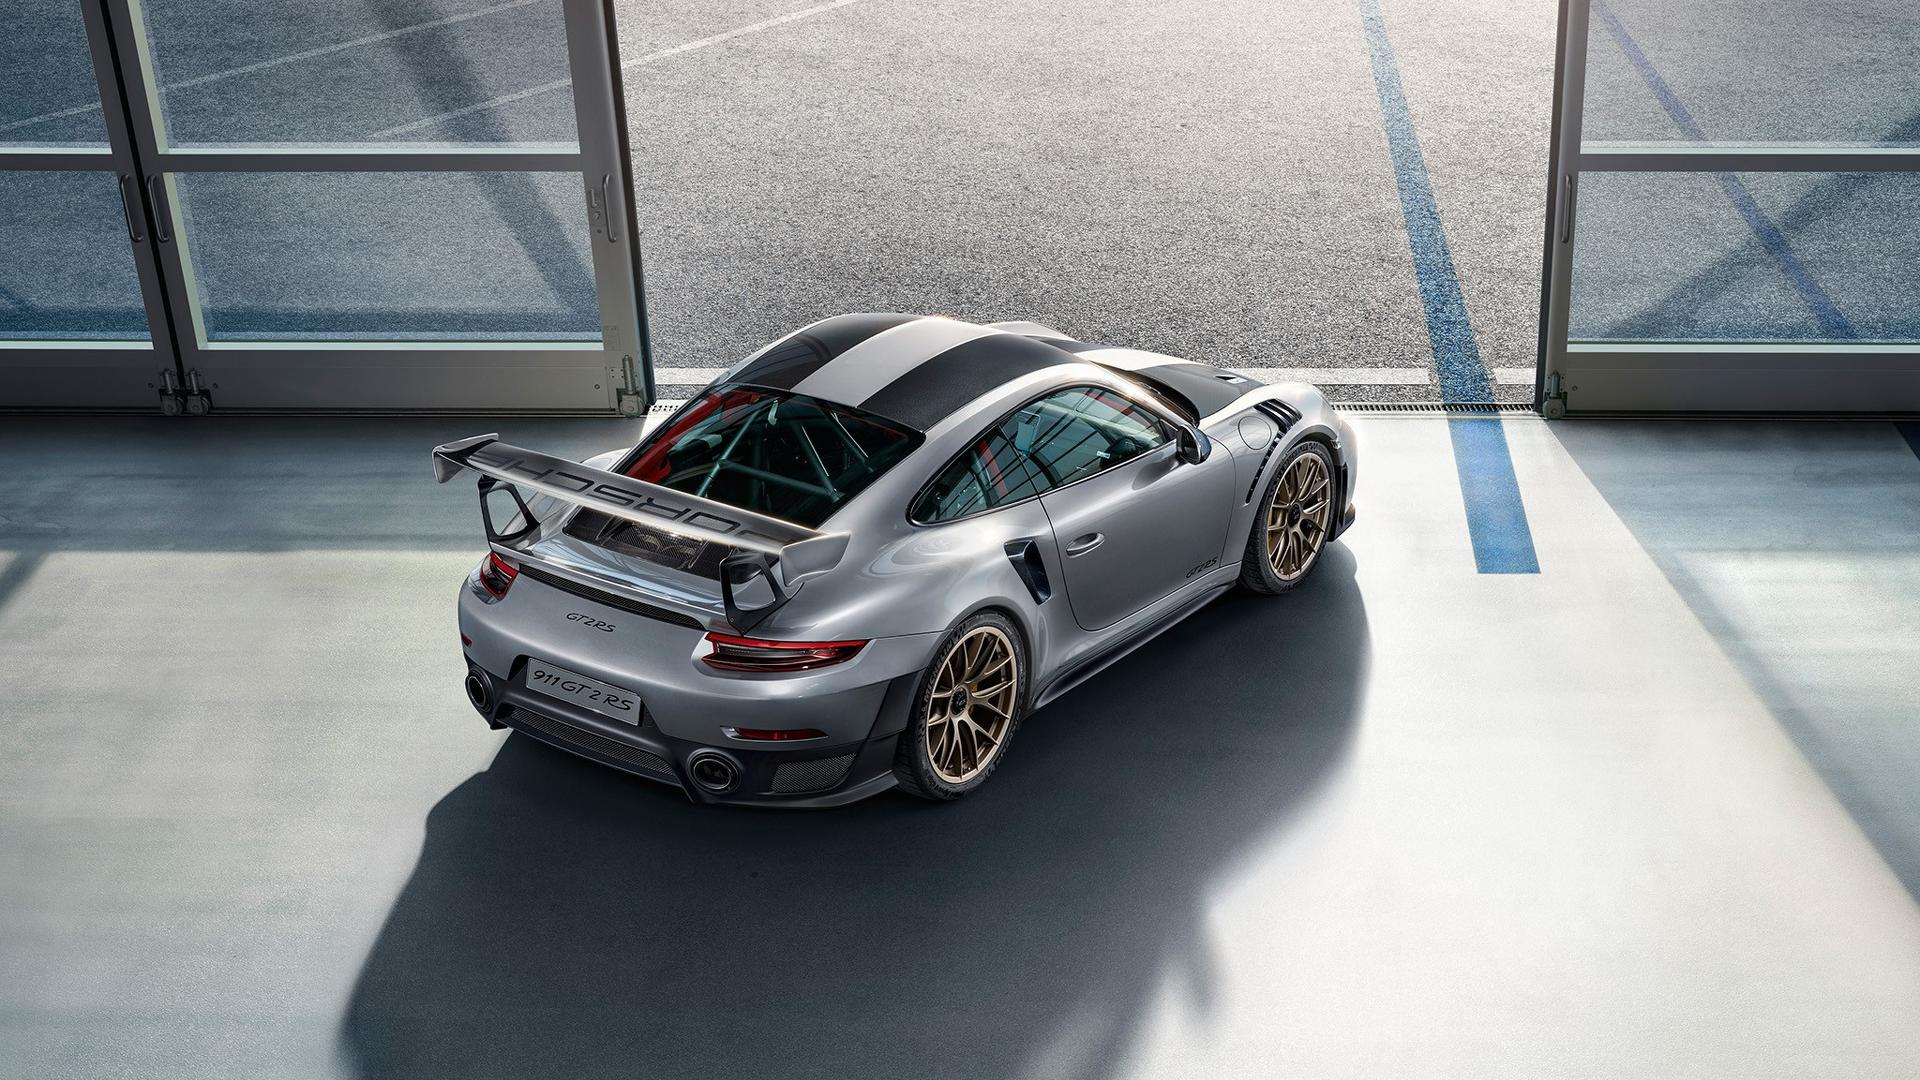 Porsche Gt2 Rs Wallpapers Top Free Porsche Gt2 Rs